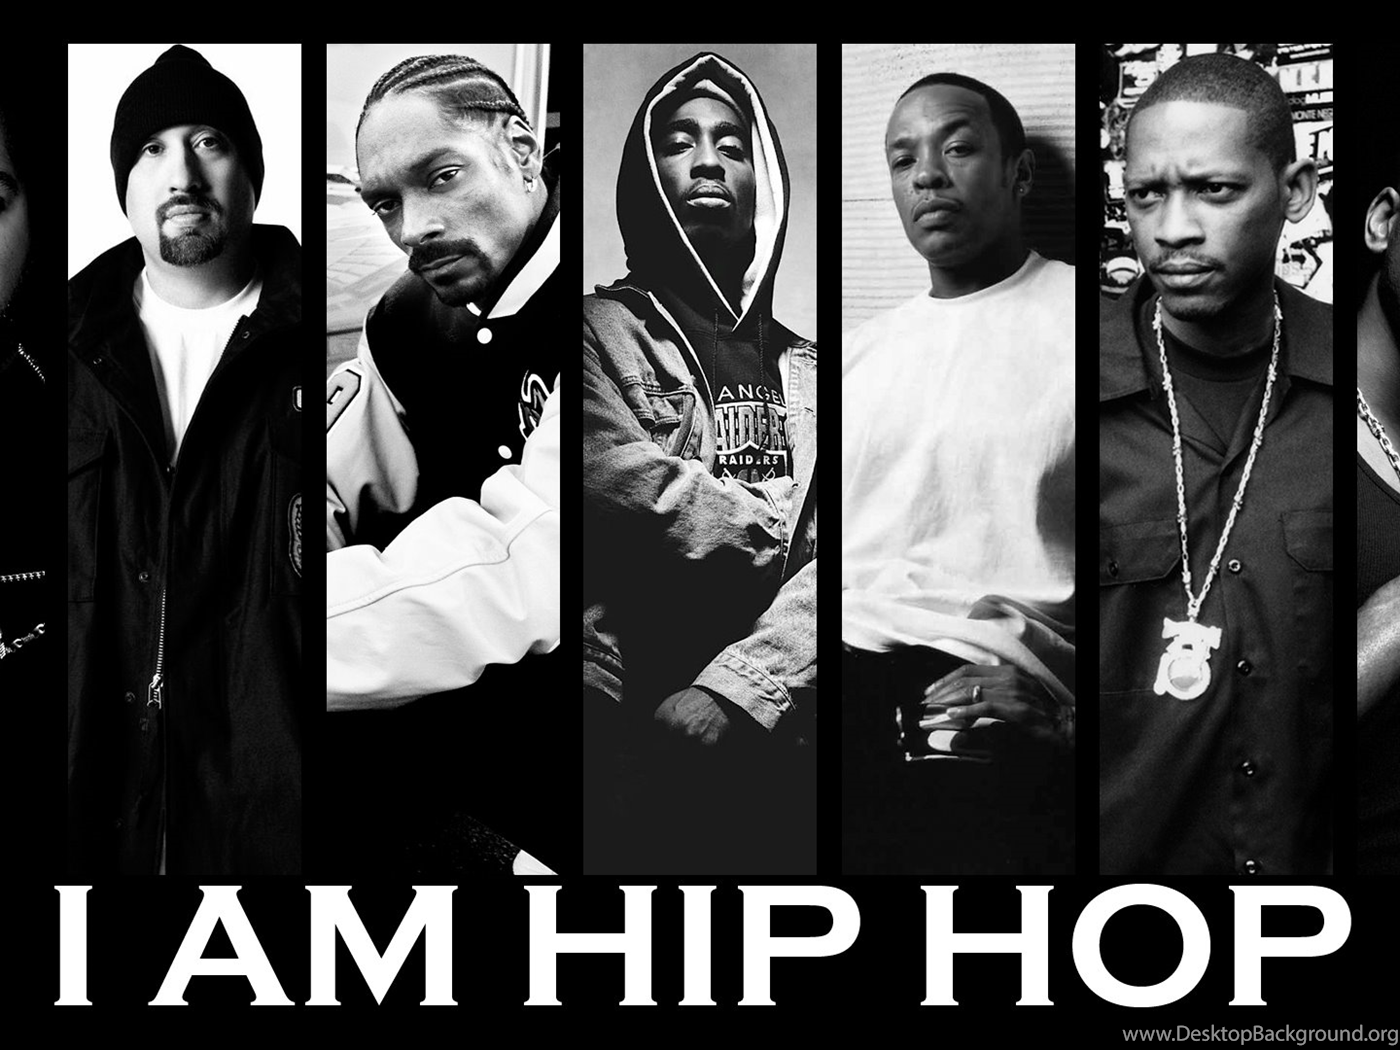 hip hoprap music appreciation essay What would life be without music | see more ideas about artists, faces and fotografie what would life be without music what would life be without music.